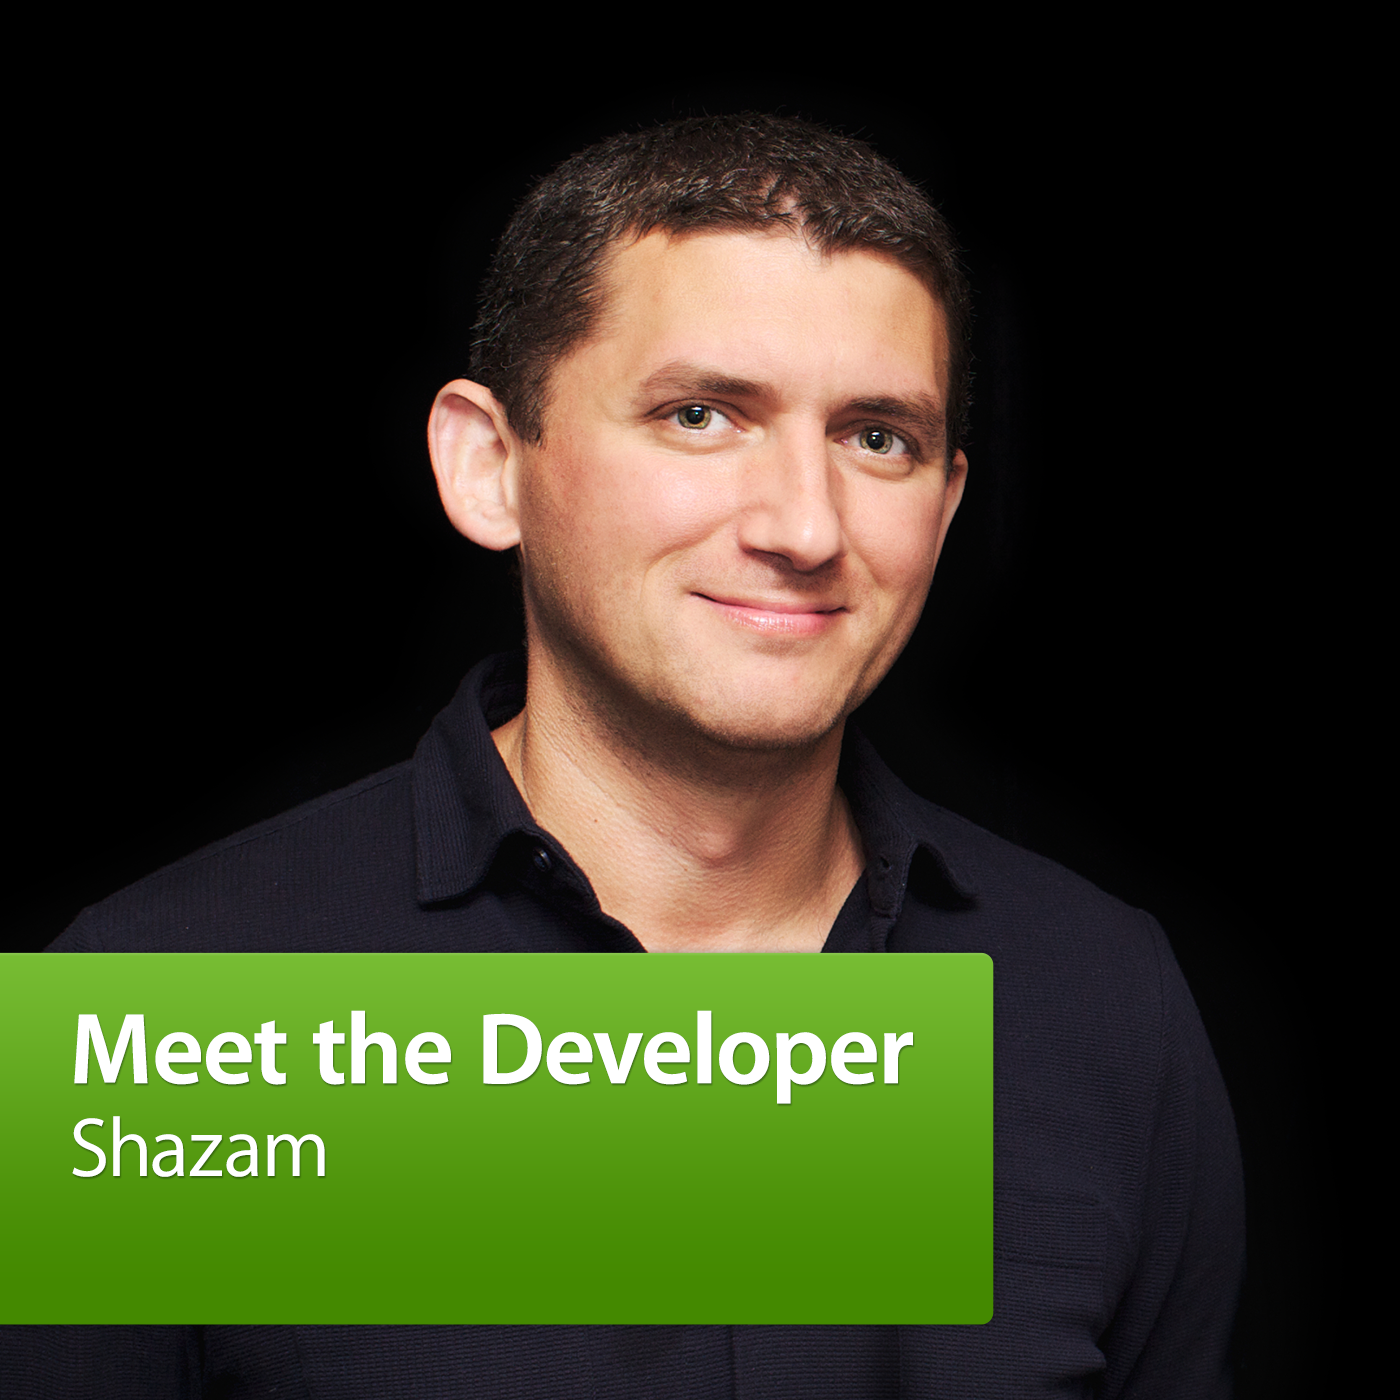 Shazam: Meet the Developer